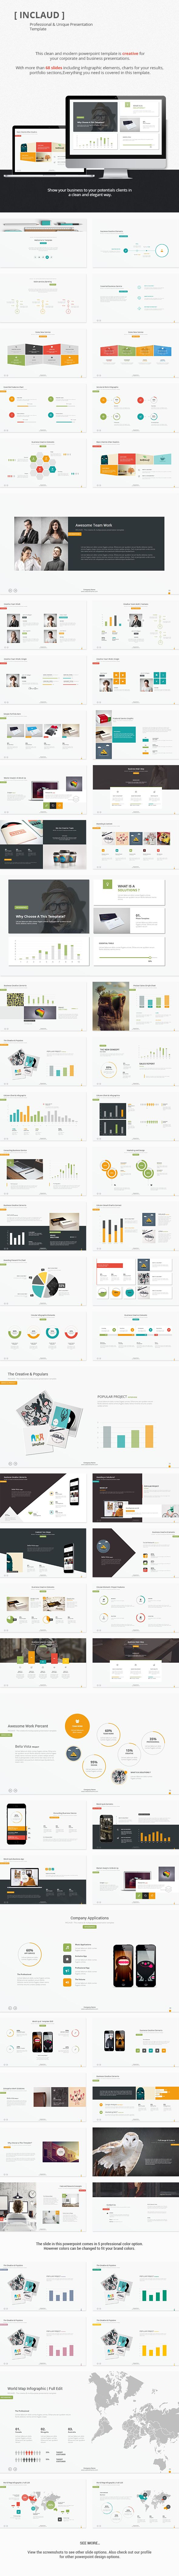 Get a modern Powerpoint Presentation that is beautifully designed and functional. This slides comes with infographic elements, charts graphs and icons. This presentation template is so versatile that it can be used in many different businesses.